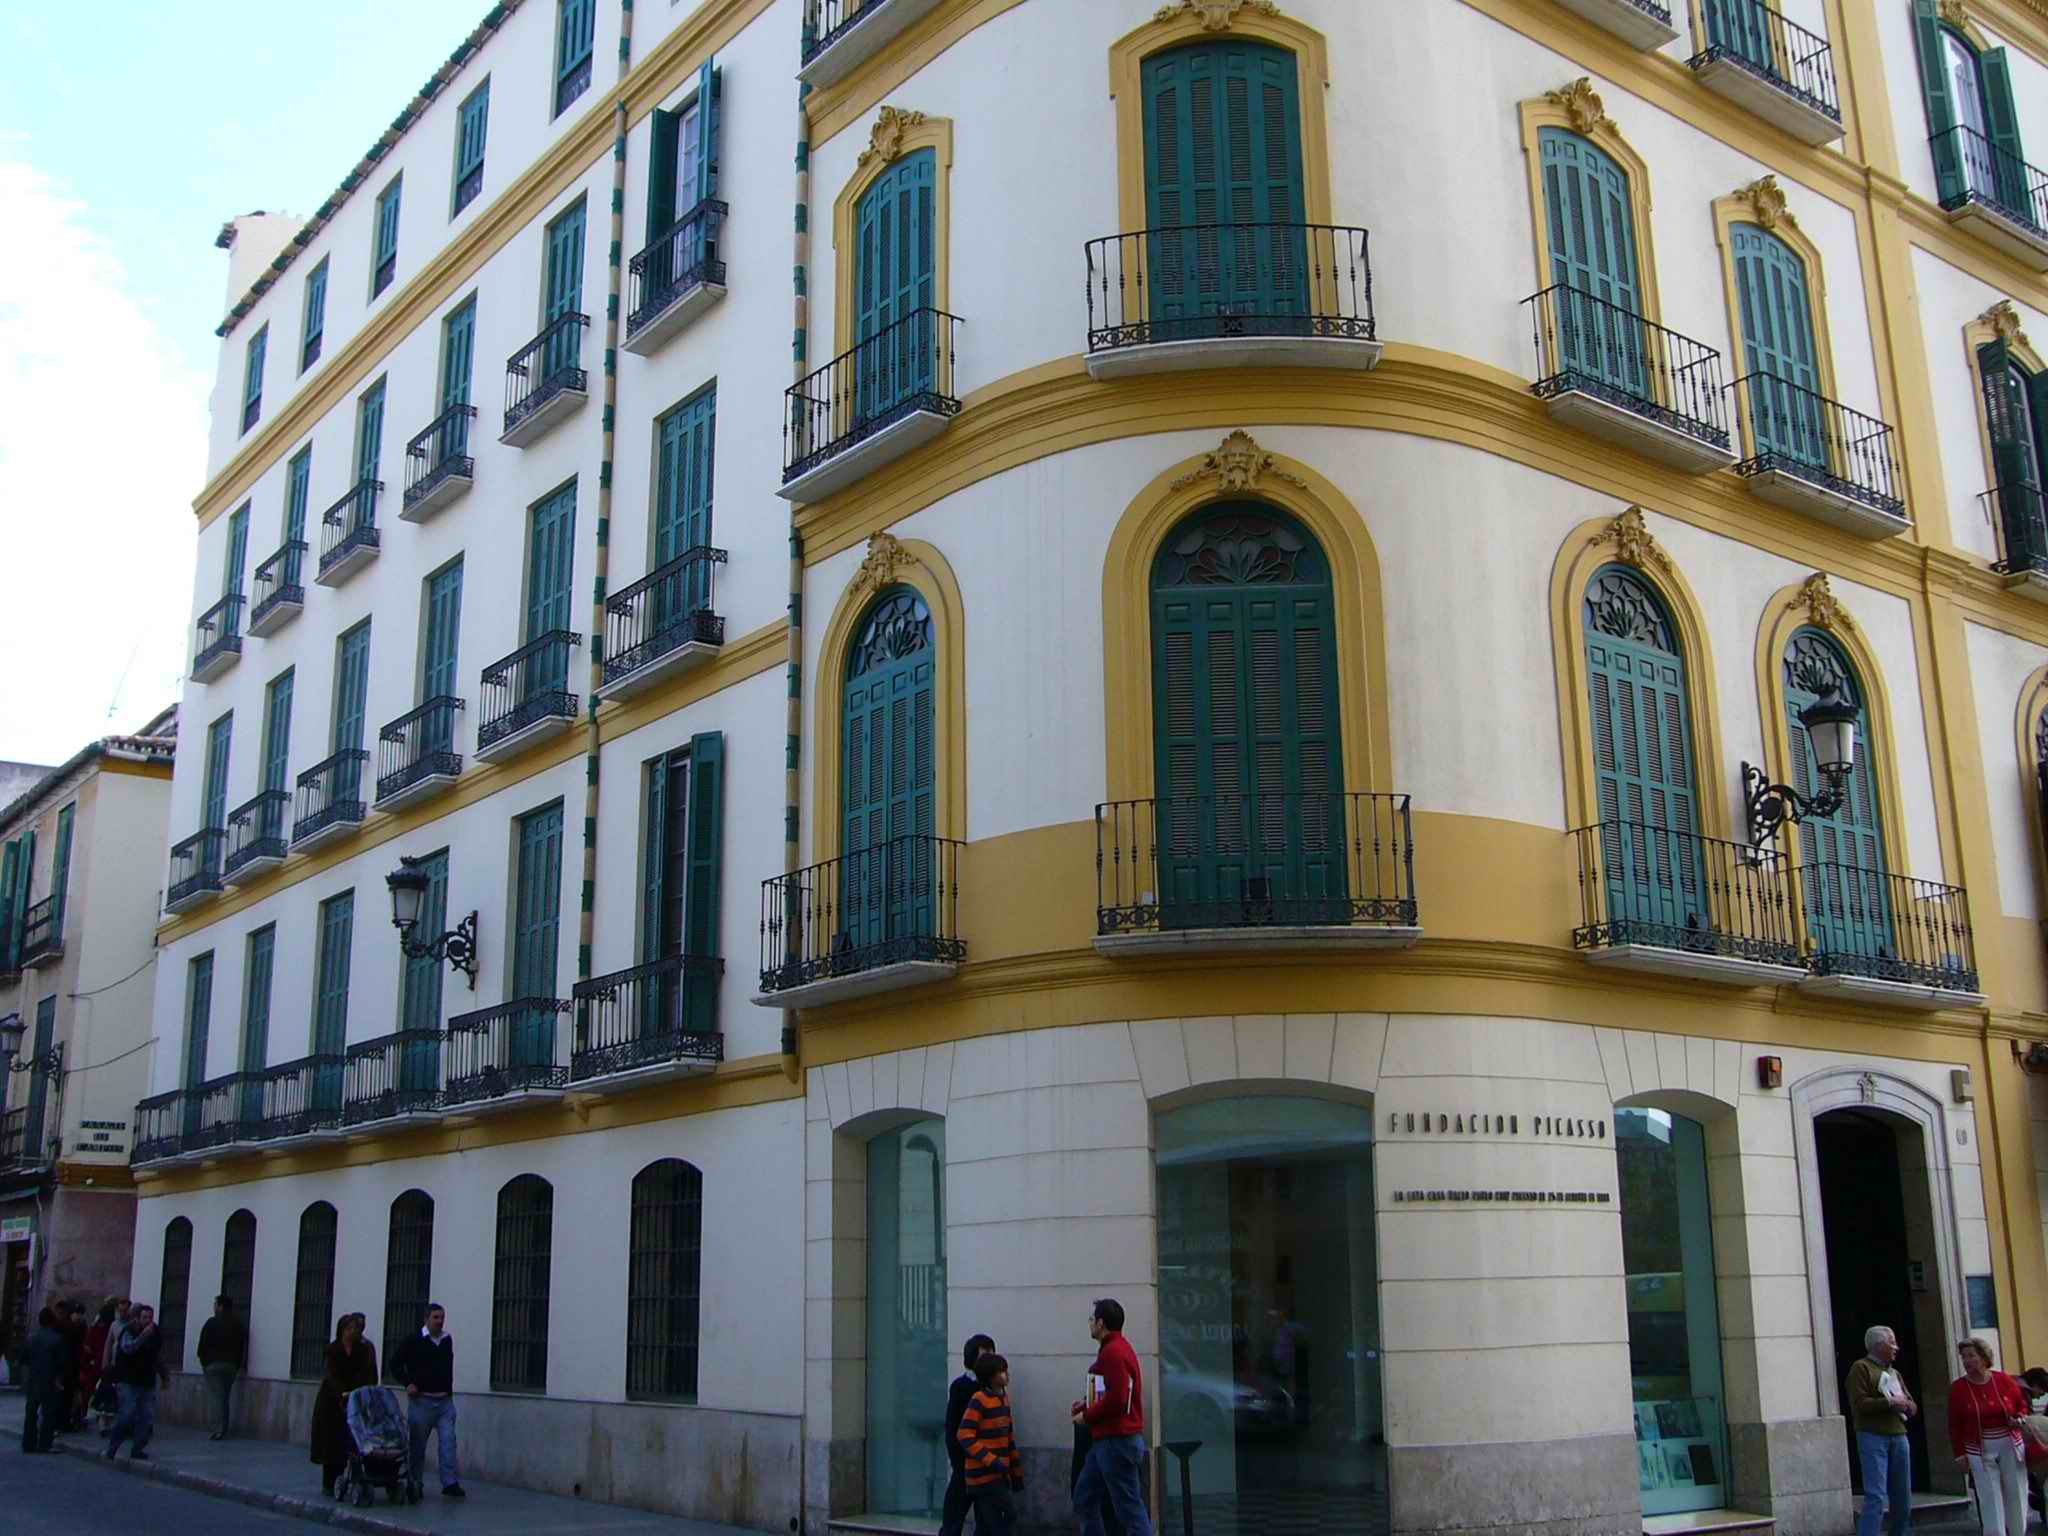 Malaga, Spain, The Picasso Museum